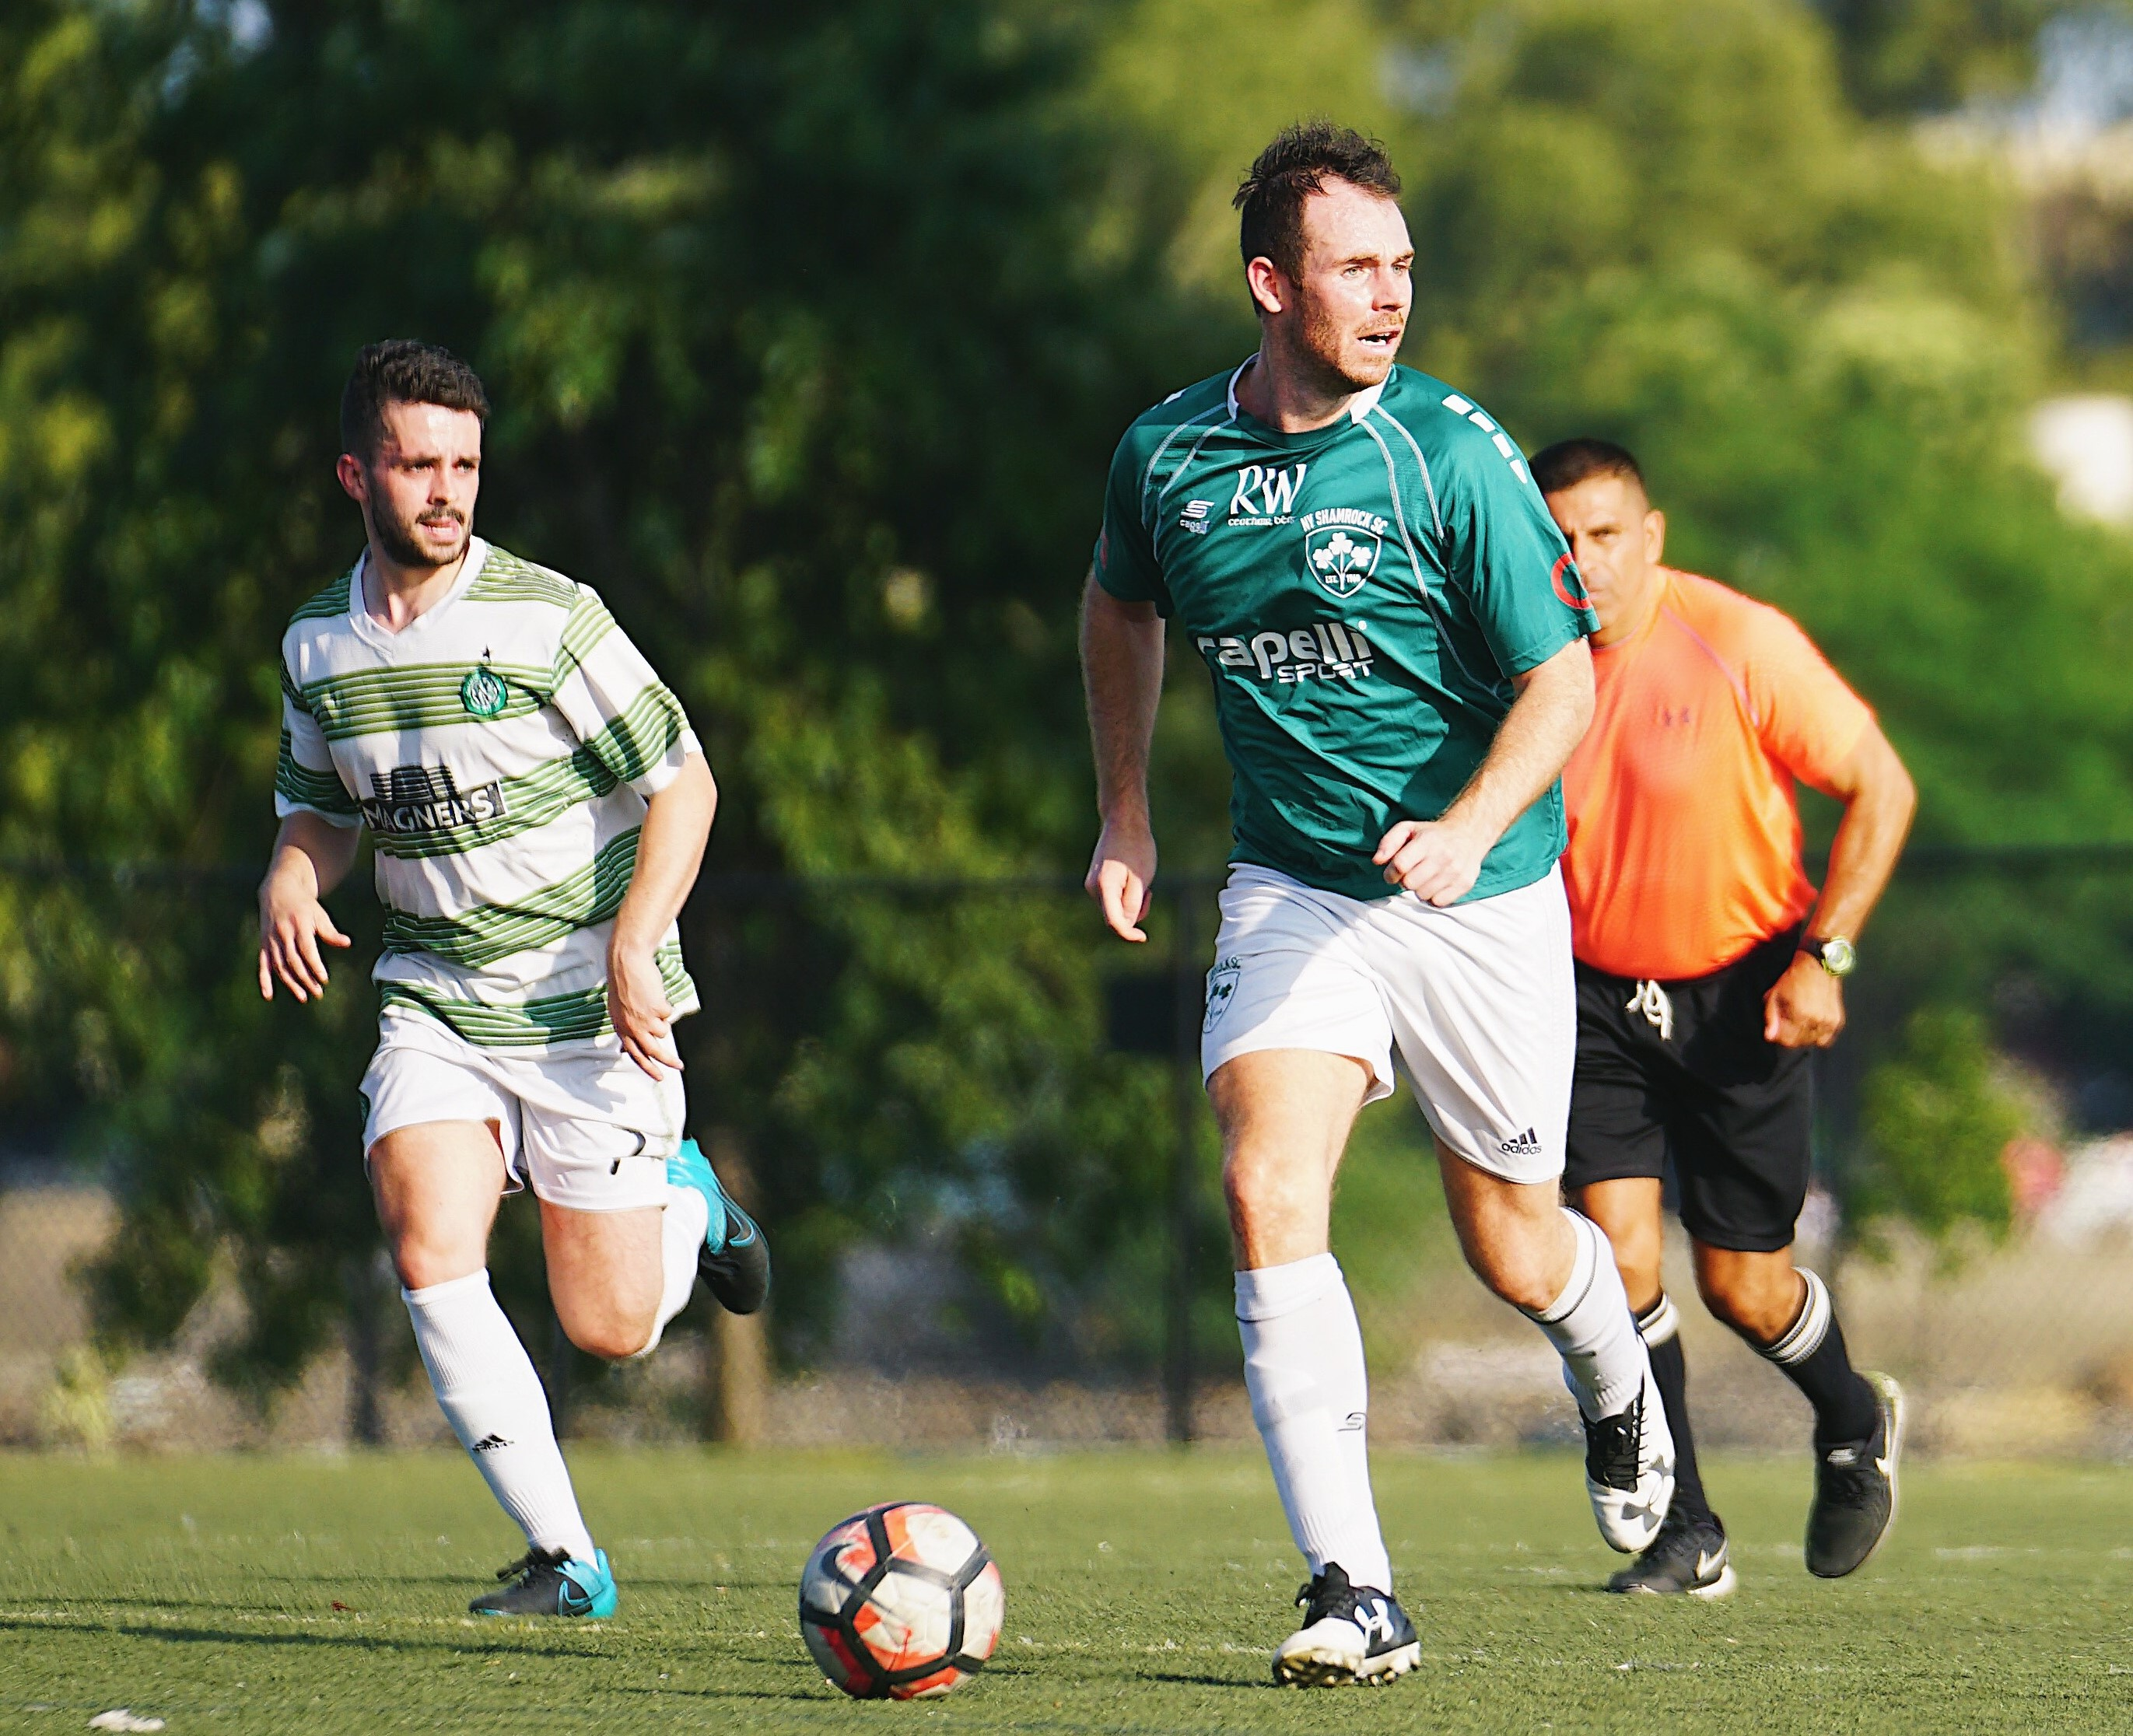 Shamrocks striker James Whyte named CSL Player of the Week